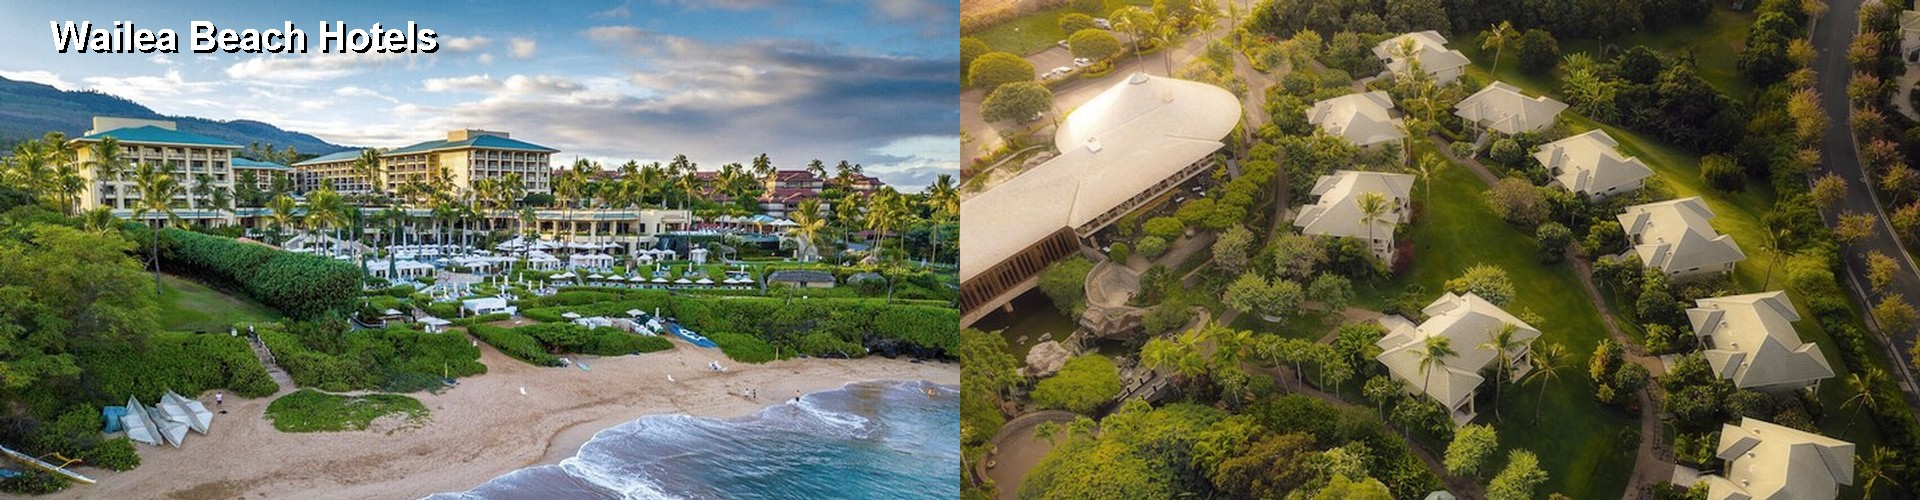 5 Best Hotels near Wailea Beach